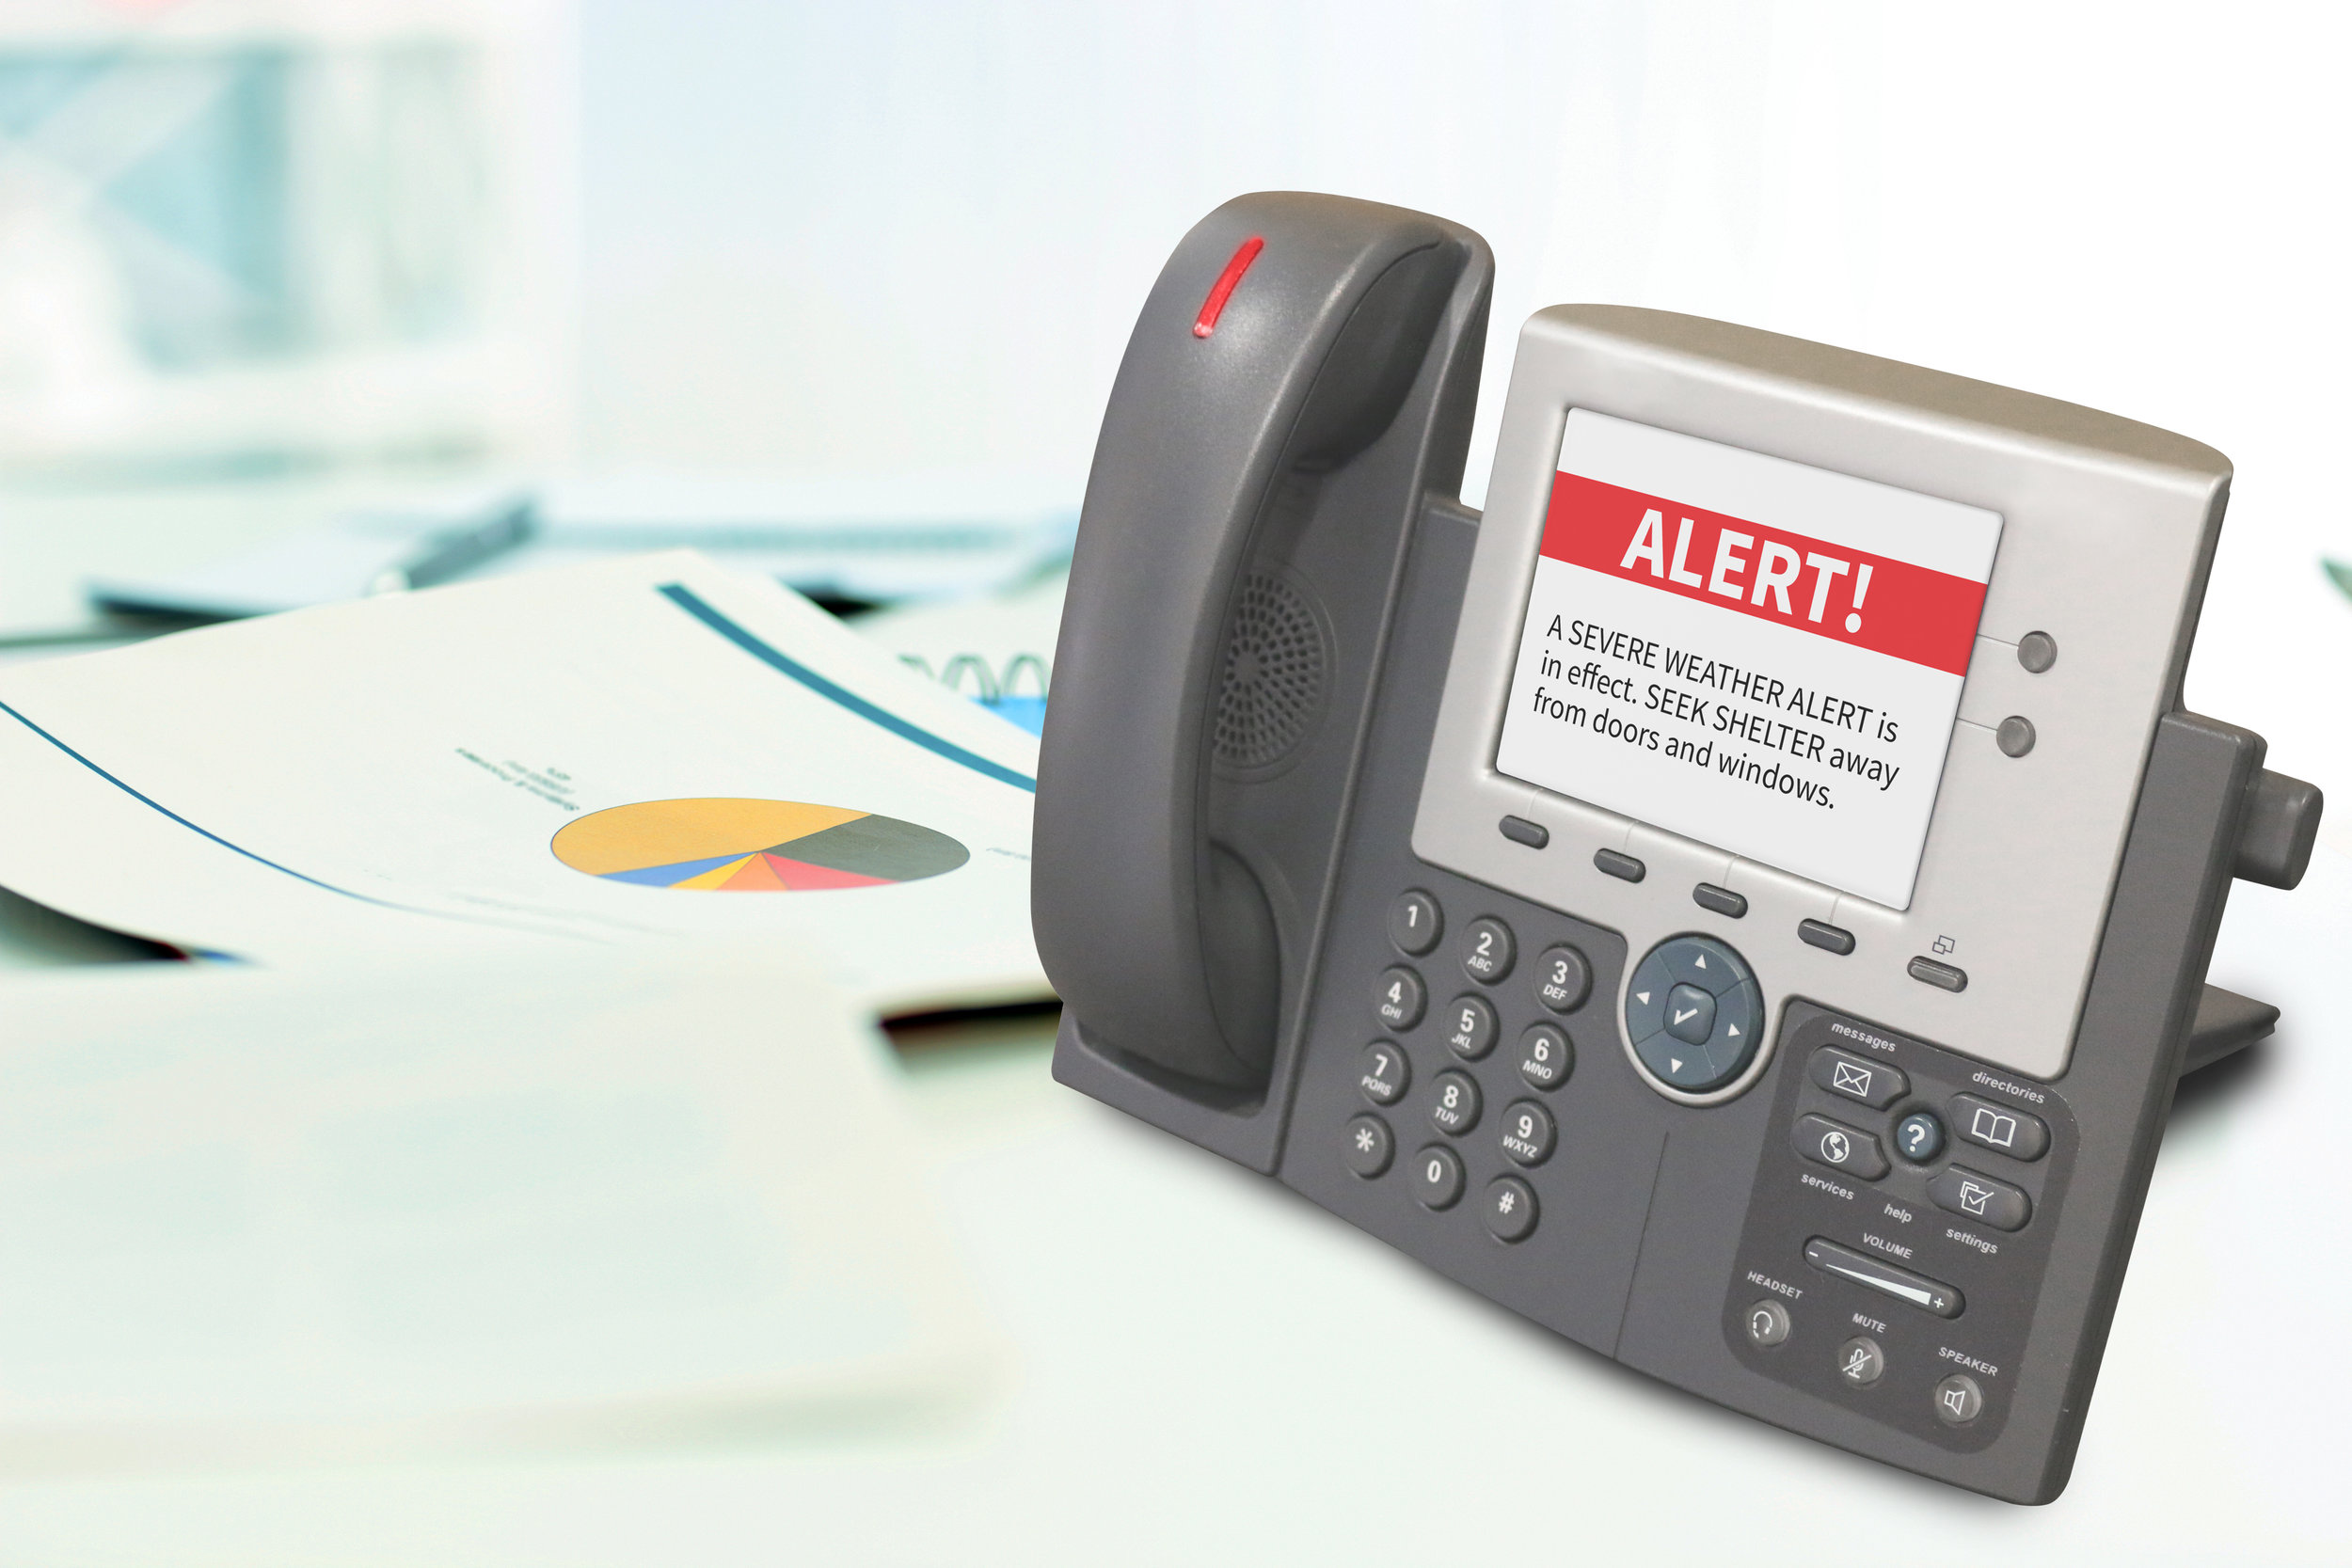 corporate_voip_phone_2017_high_res.jpg